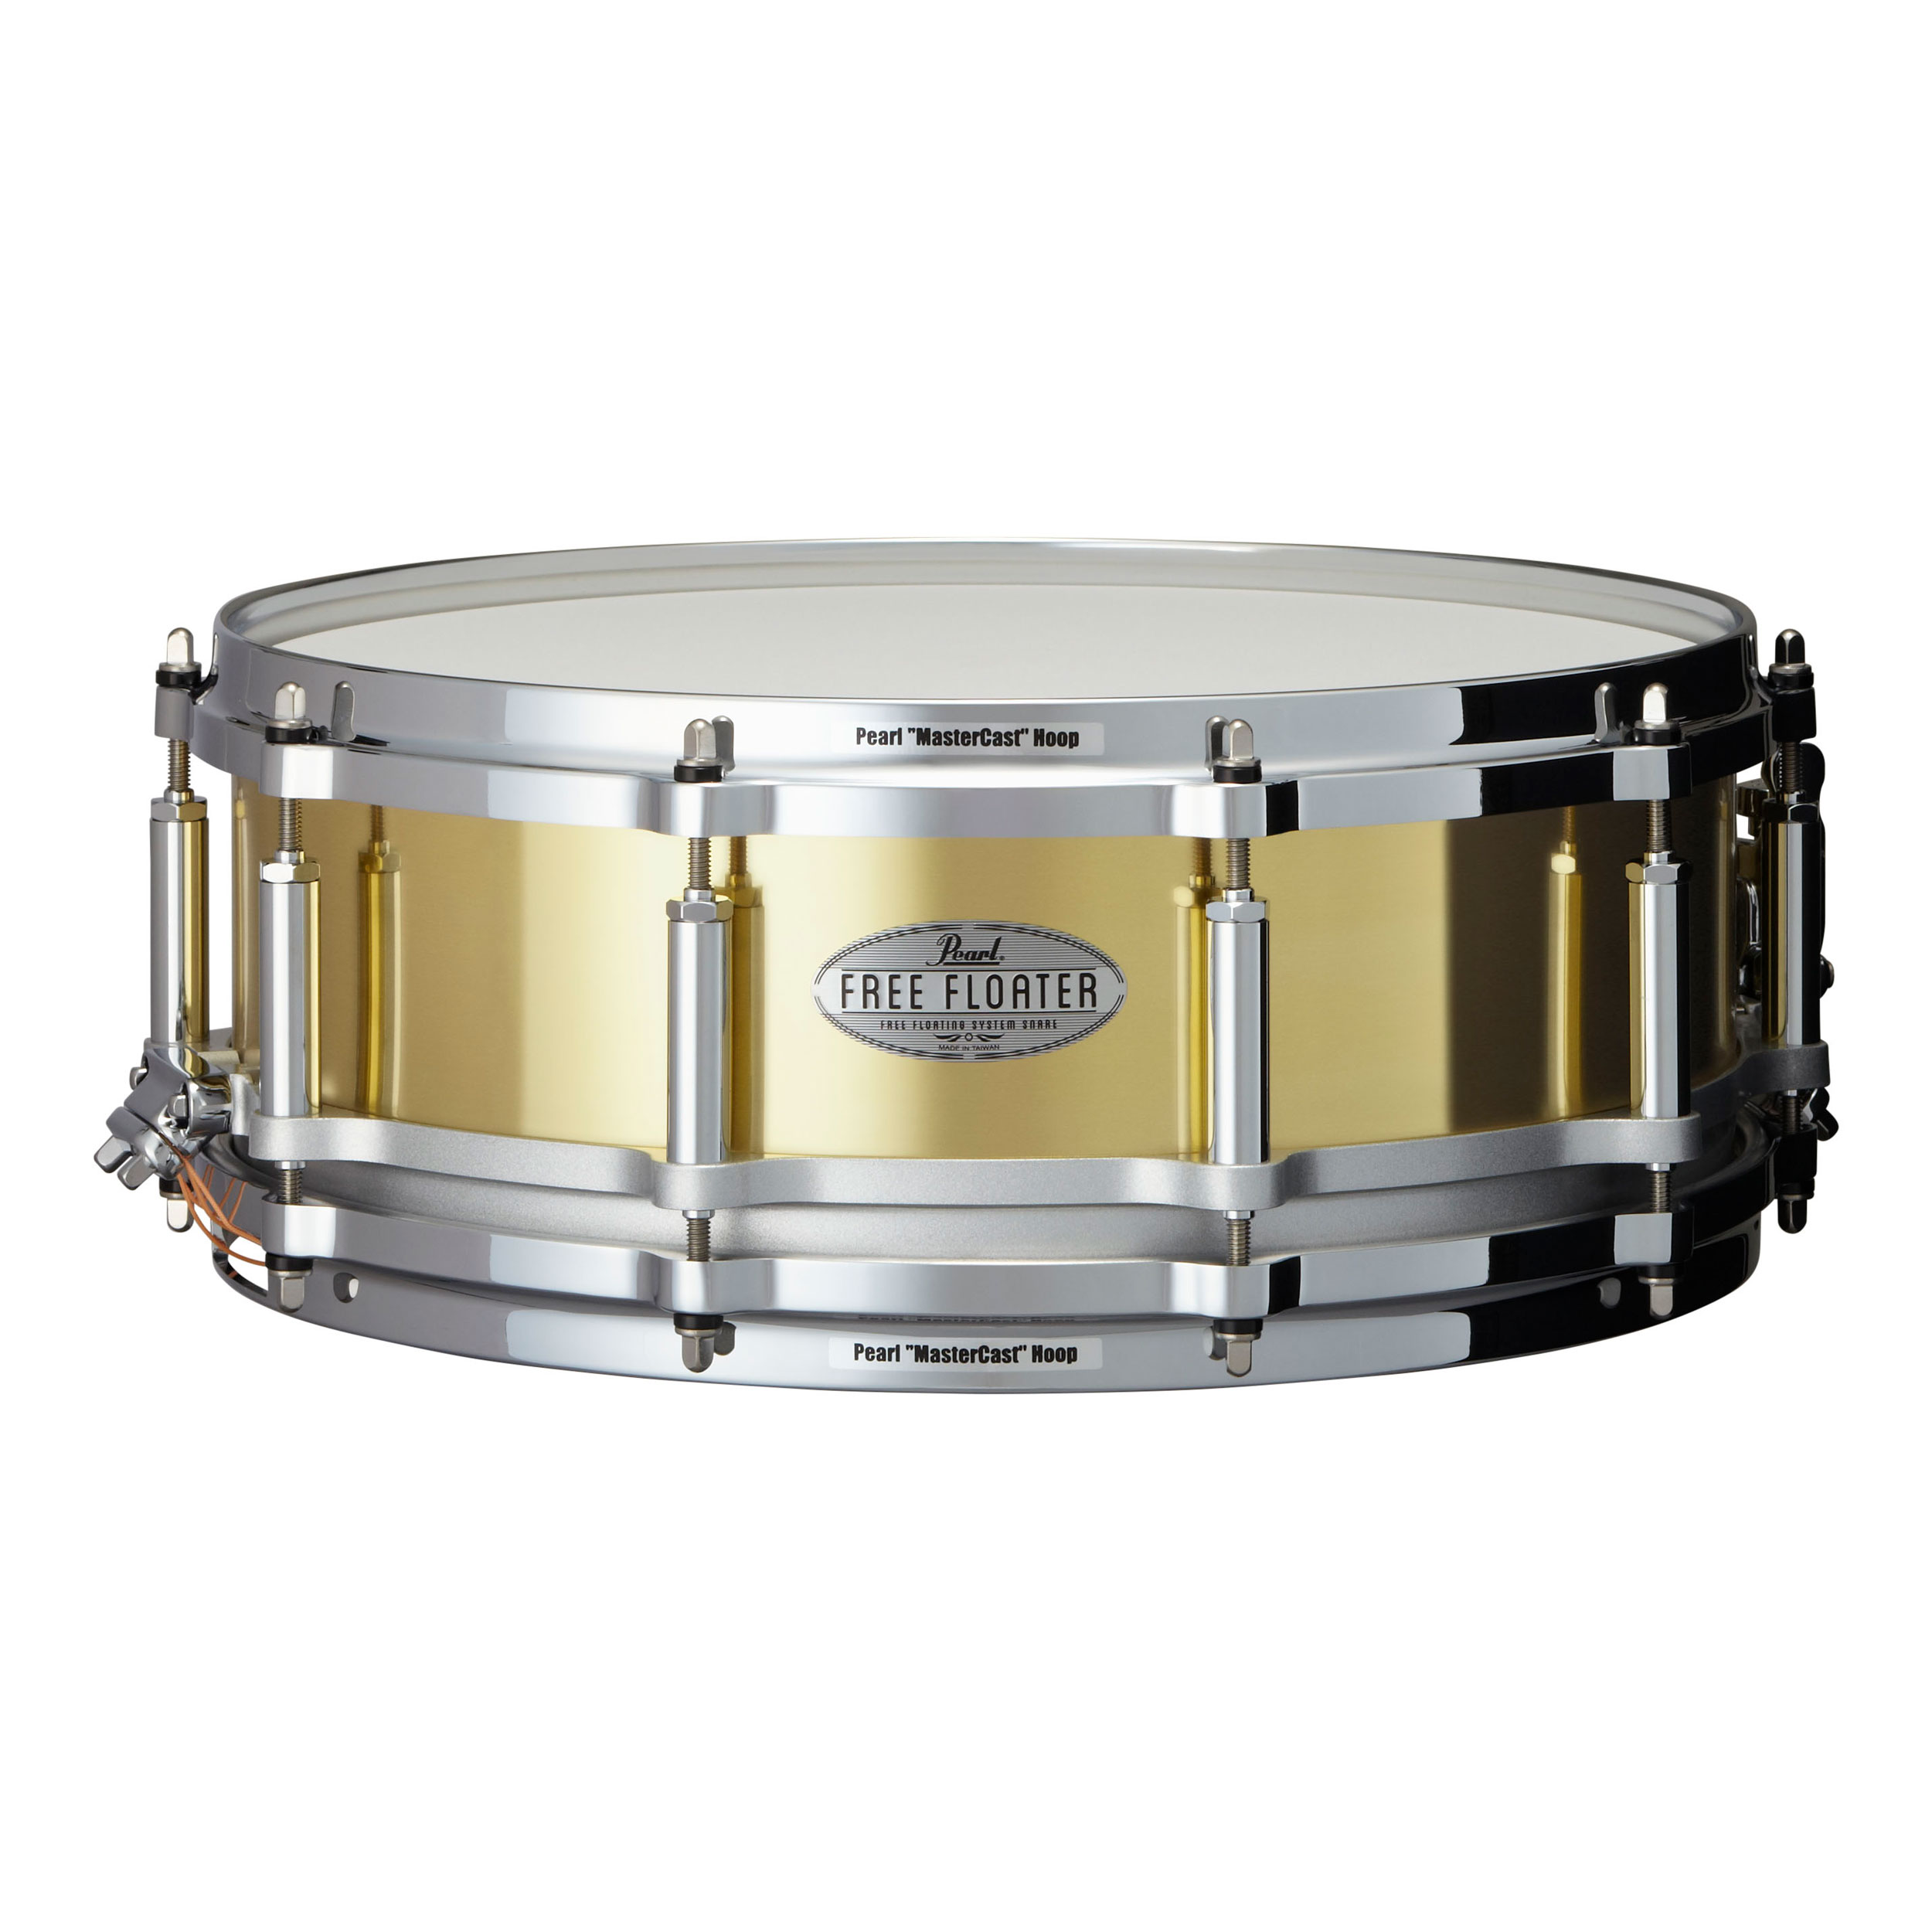 "Pearl 14"" x 5"" Task-Specific Free Floating Brass Snare Drum"